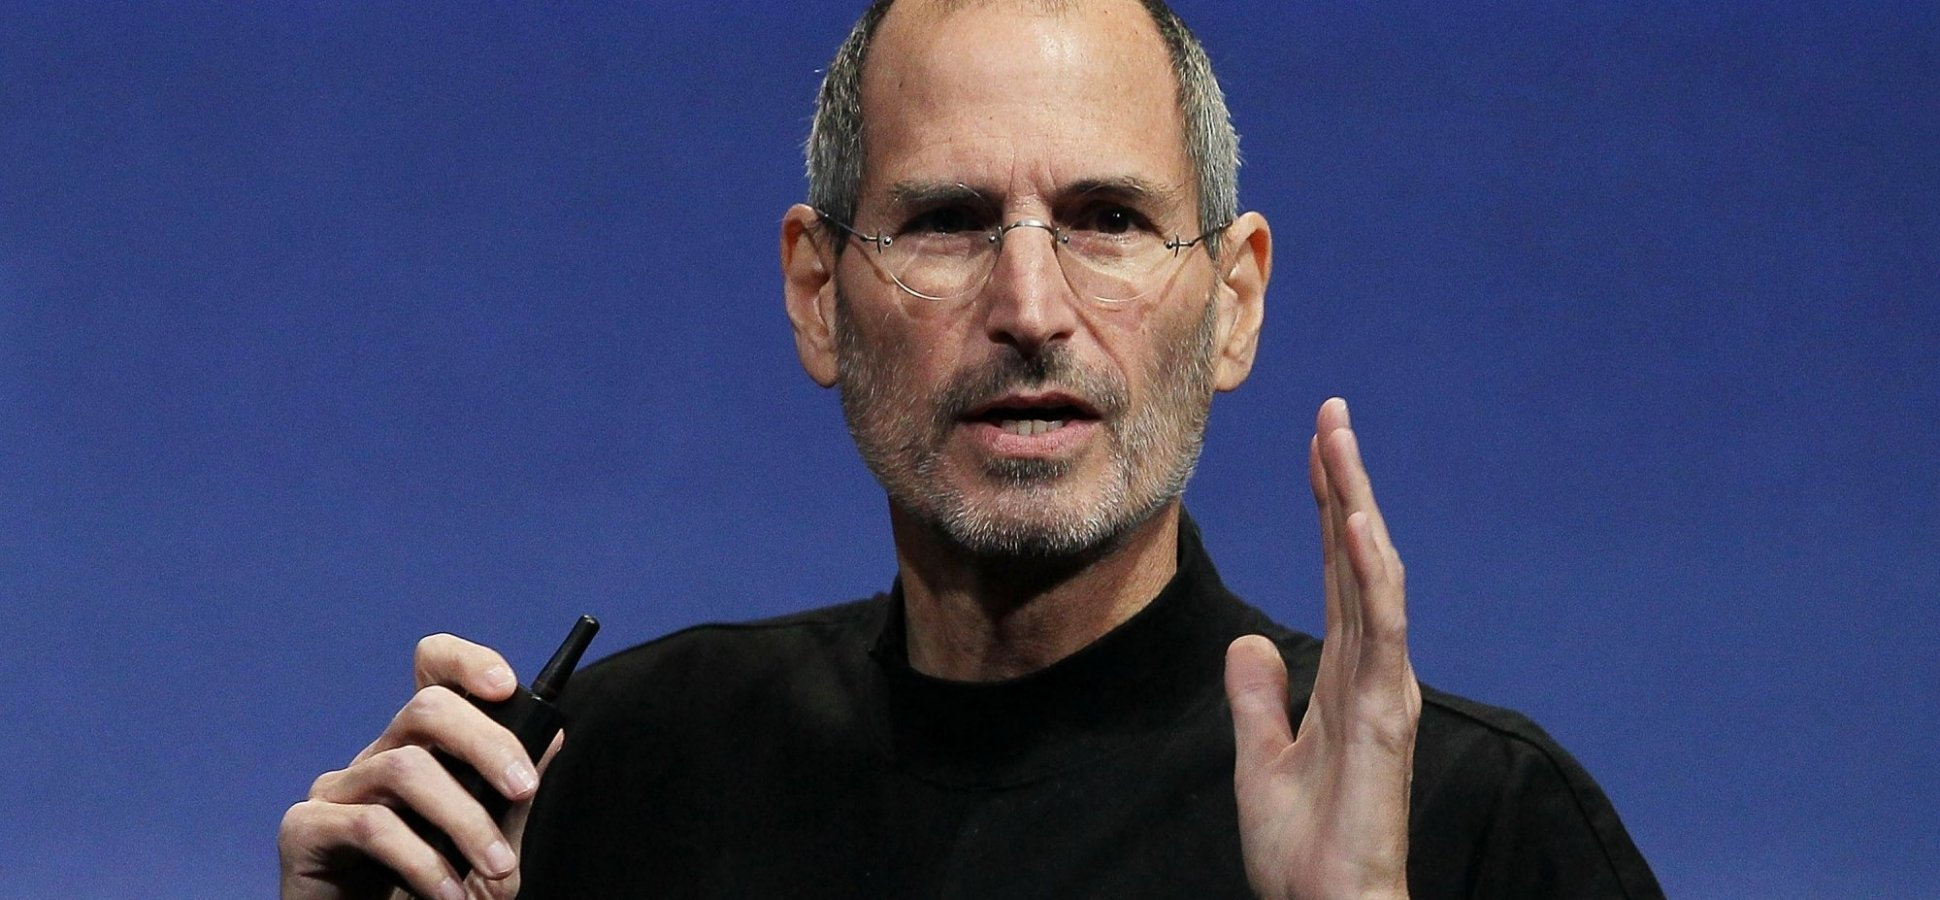 With These 5 Stunning Words, Steve Jobs Added a Truly Brutal Chapter to His Legacy